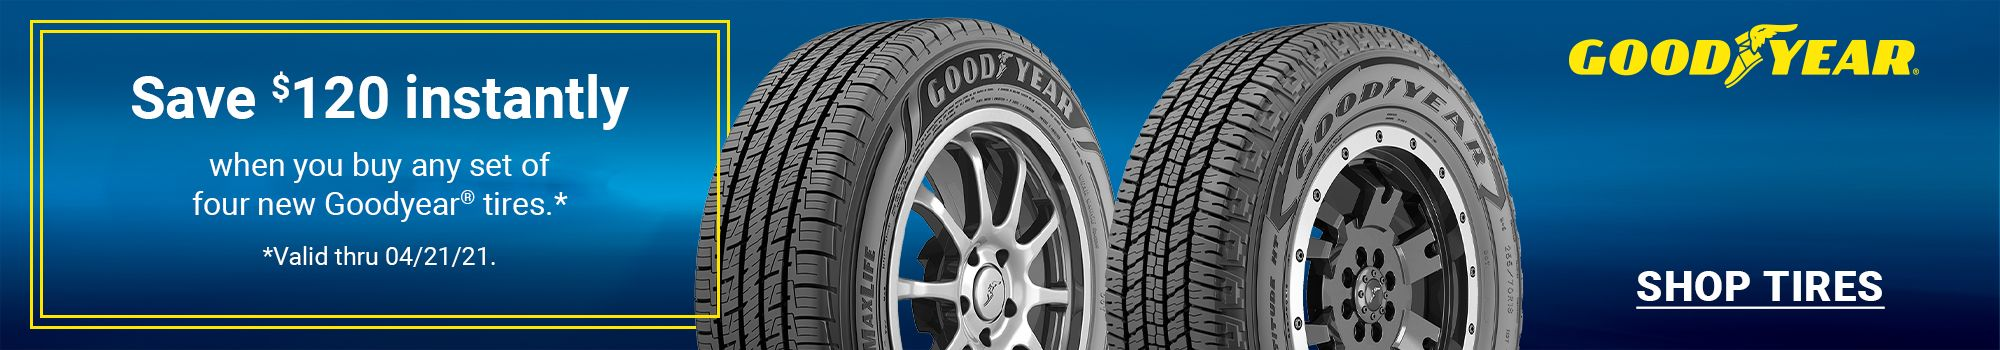 Save $80 instantly when you buy any set of four new Goodyear passenger or light truck Tires. Click to SHOP TIRES. Valid through 04/07/21.